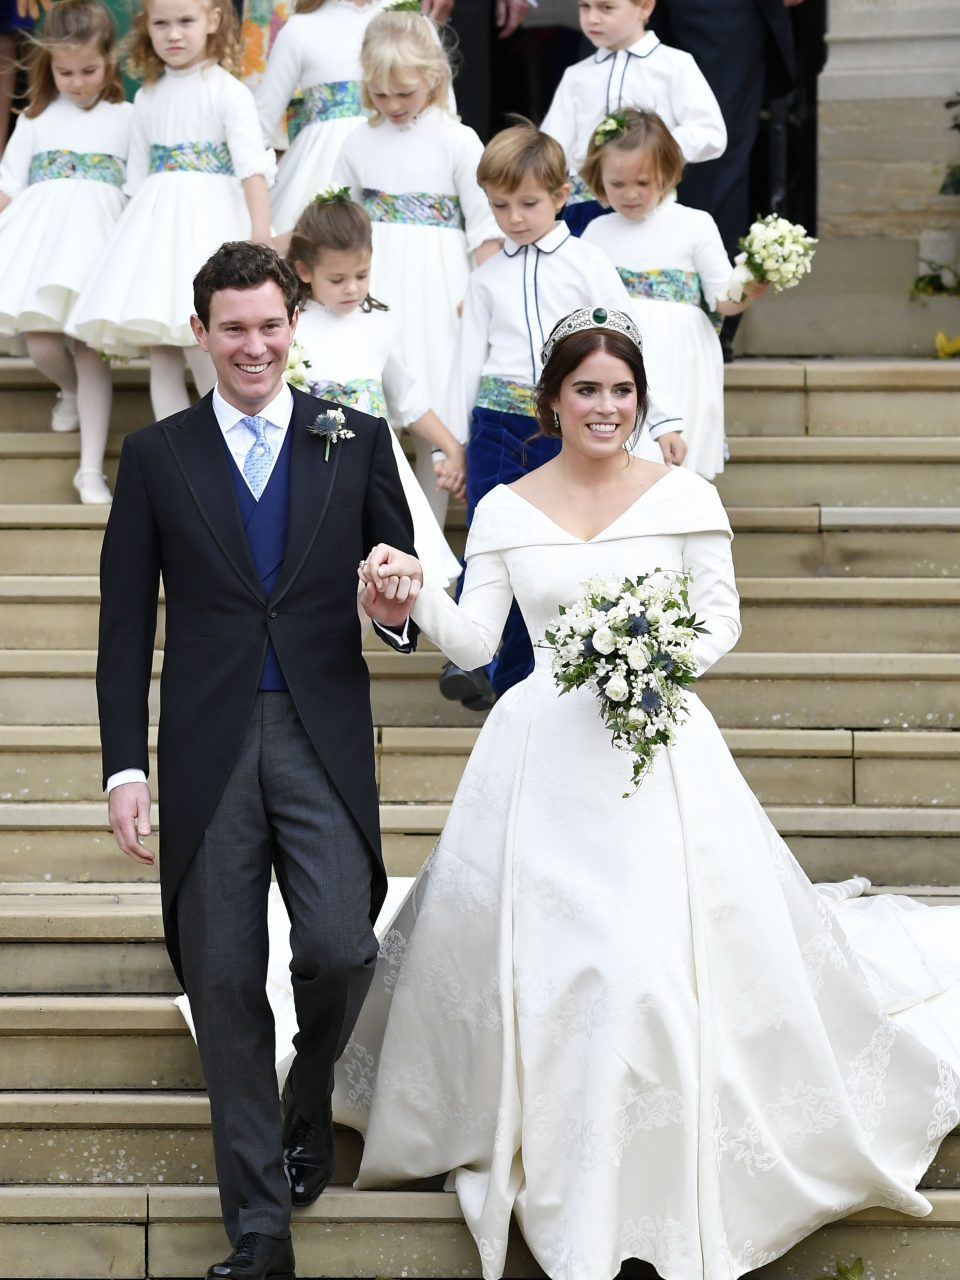 Princess Eugenie and Jack Brooksbank leave the royal wedding